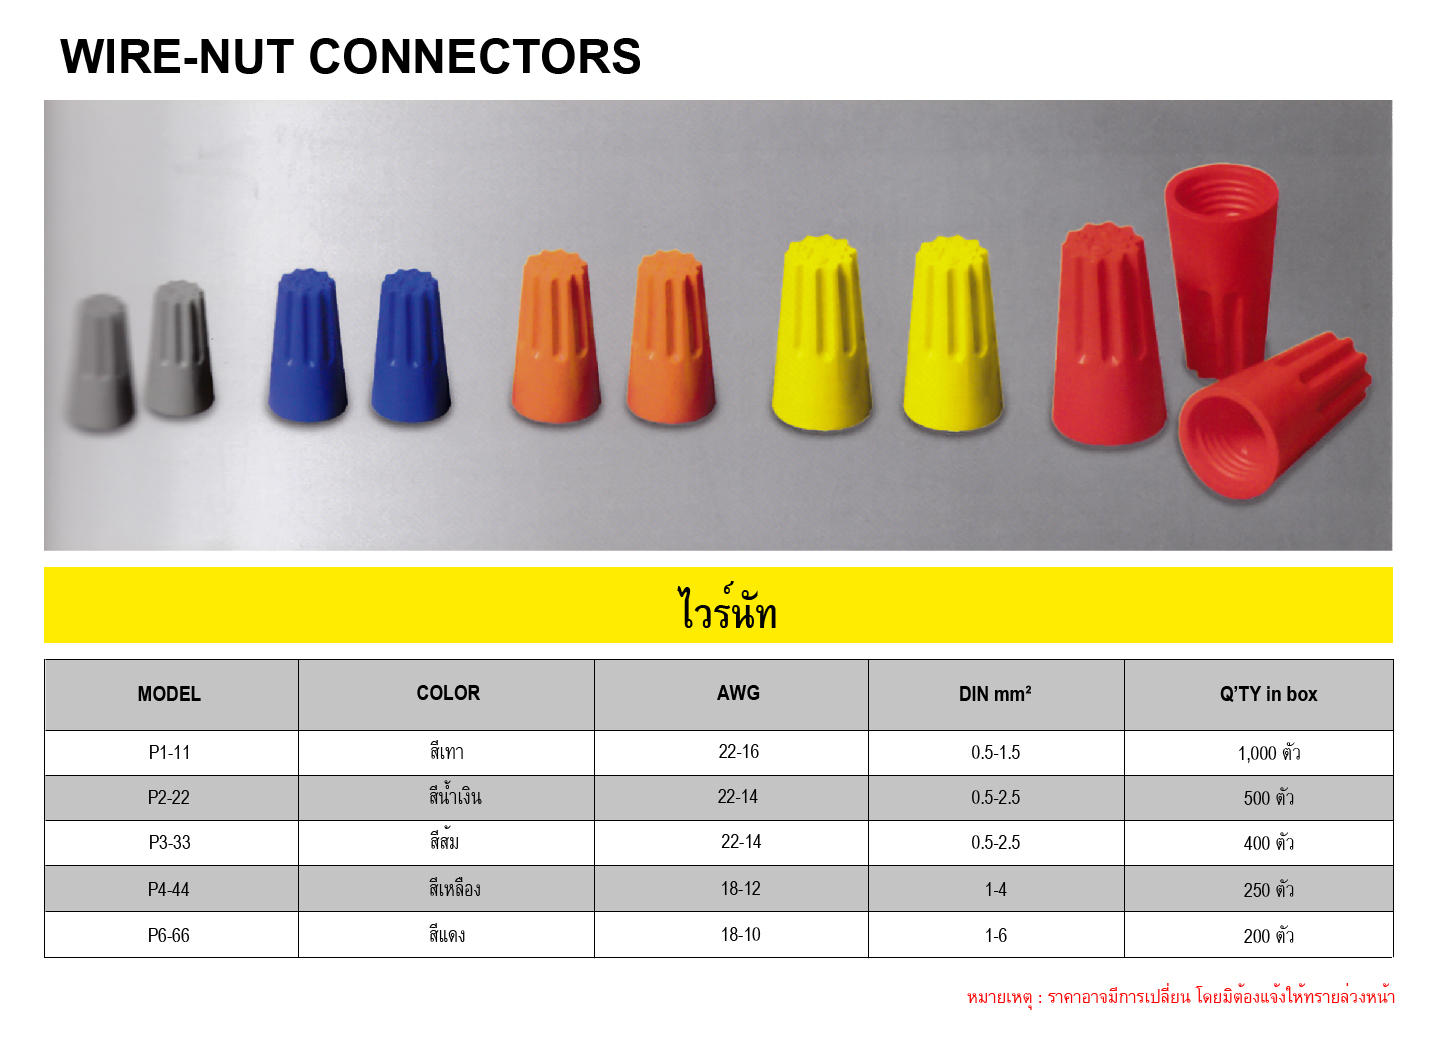 Lovely wire nut colors contemporary electrical and wiring wire nut connectors knt cable sciox Images